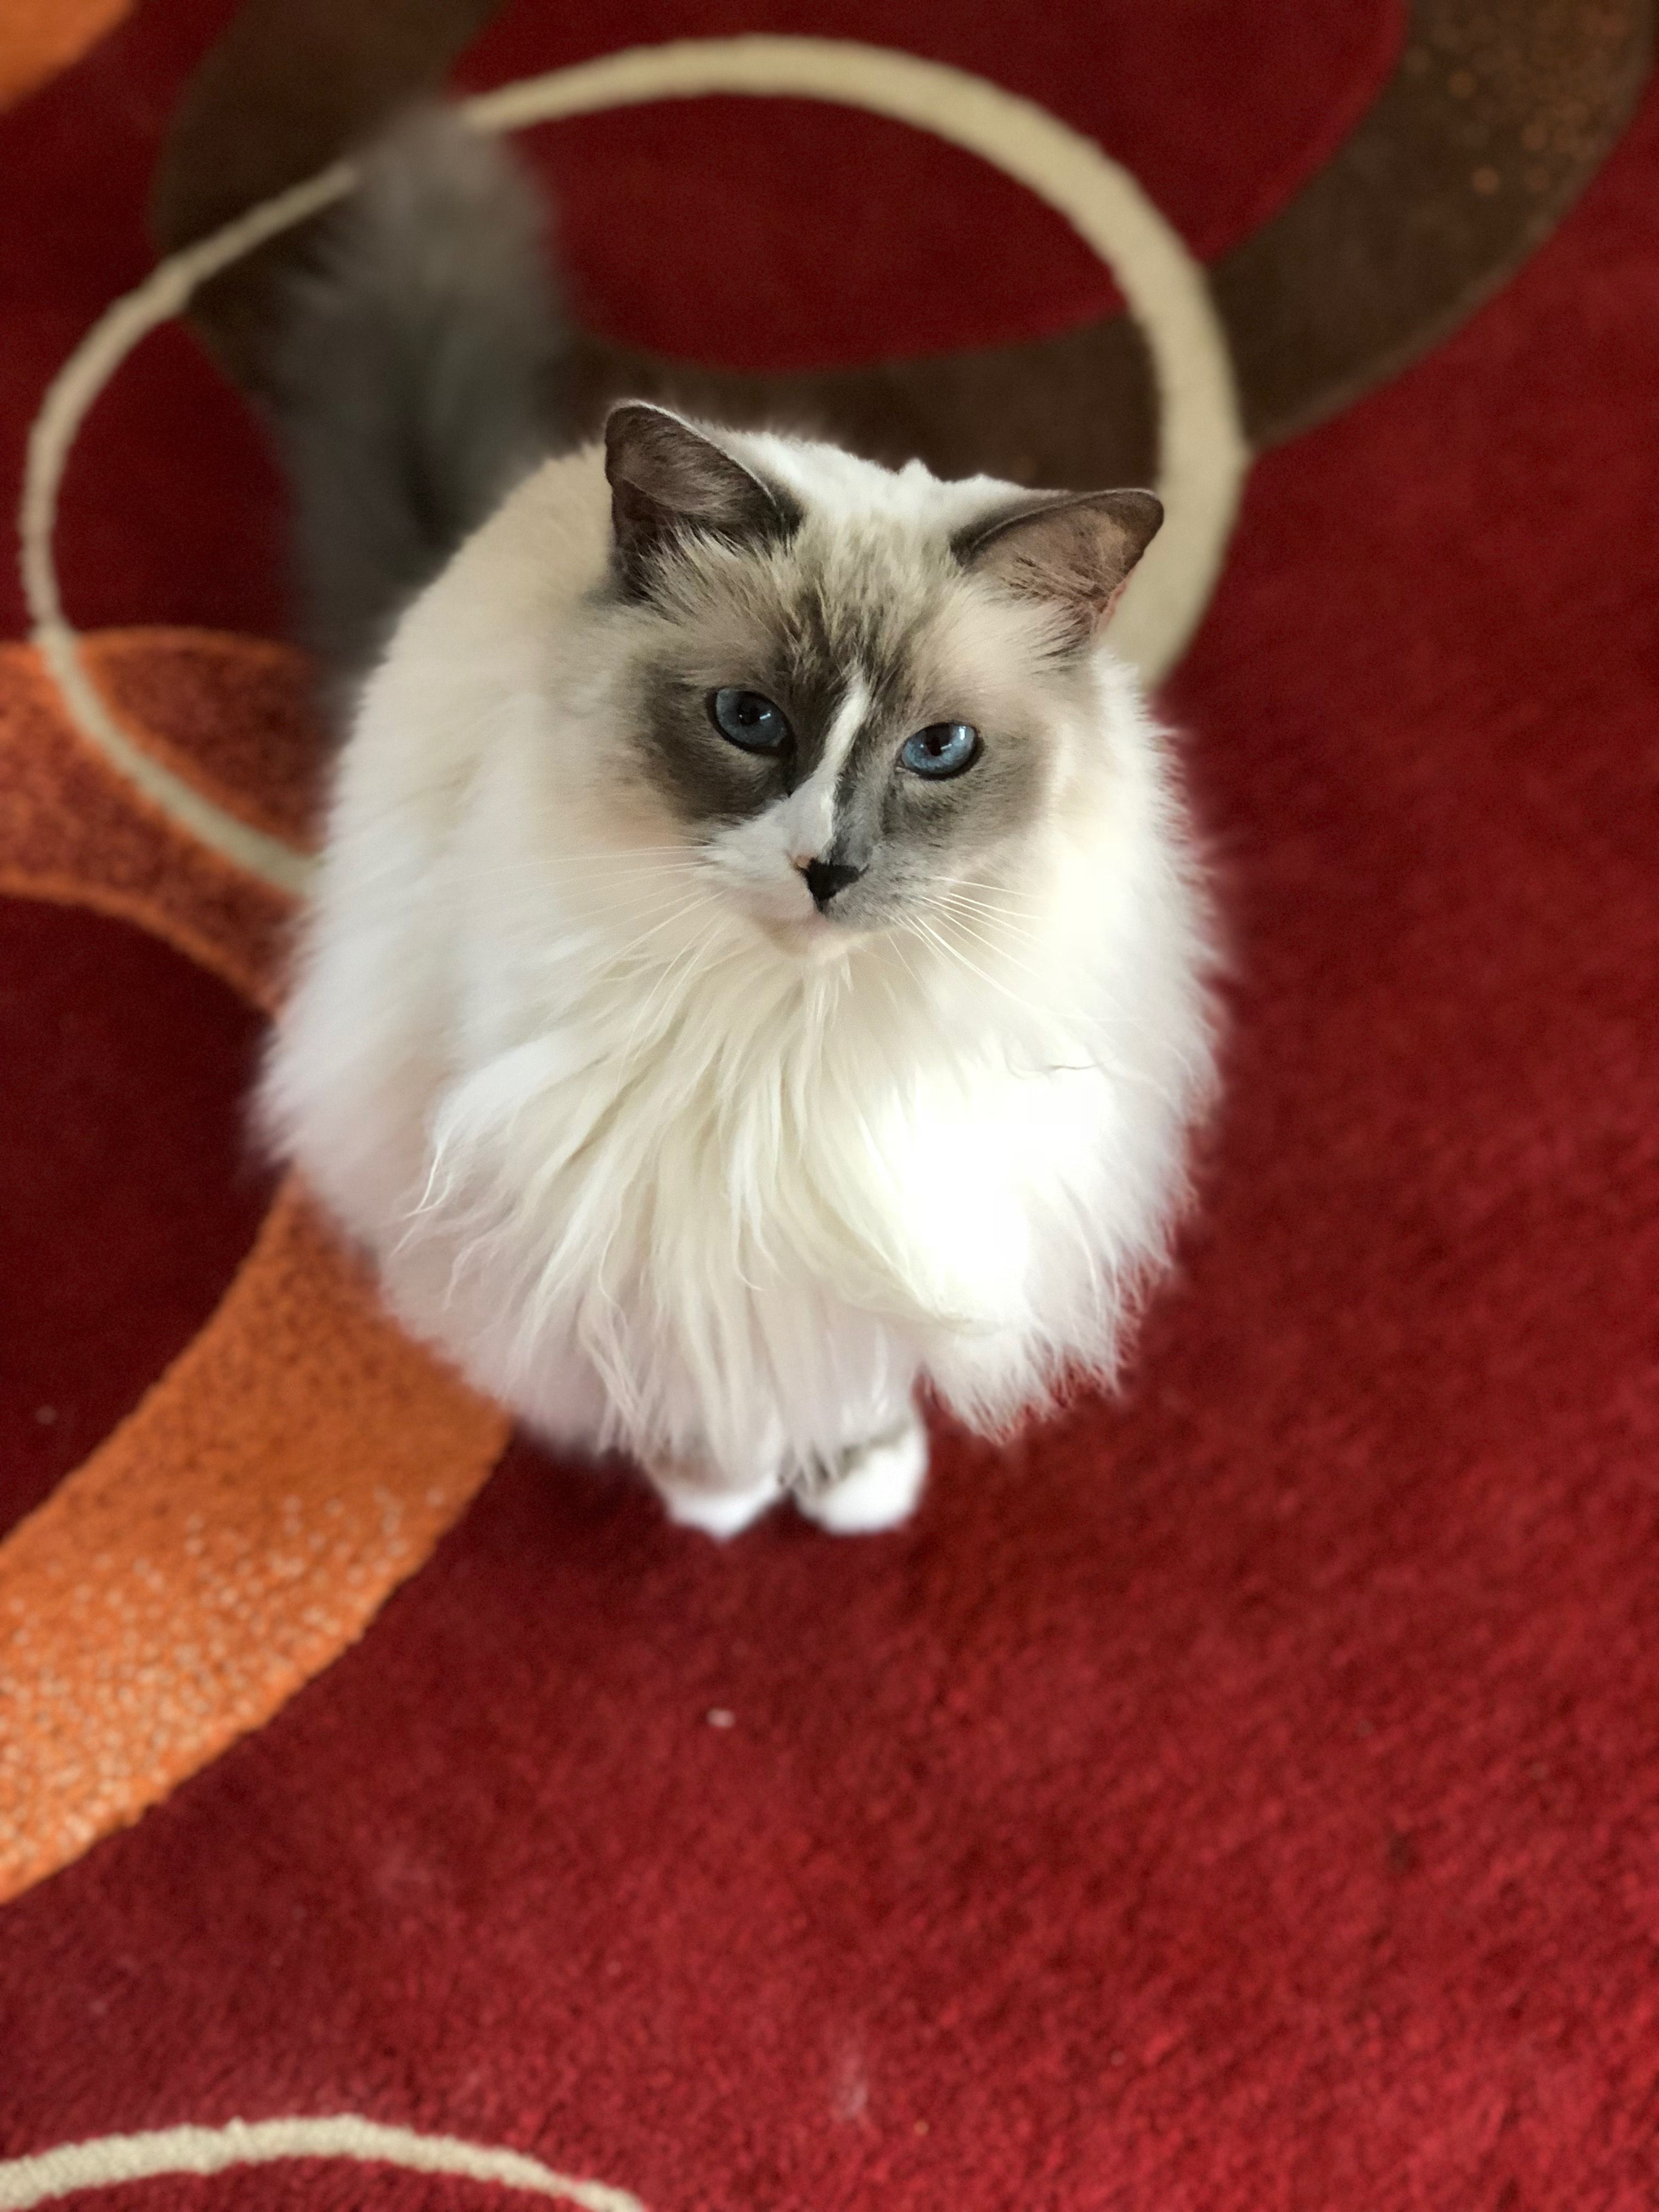 Pin By Sonja Van Beveren On Ragdolls Cats And Kittens Cat Rescue Animal Rescue